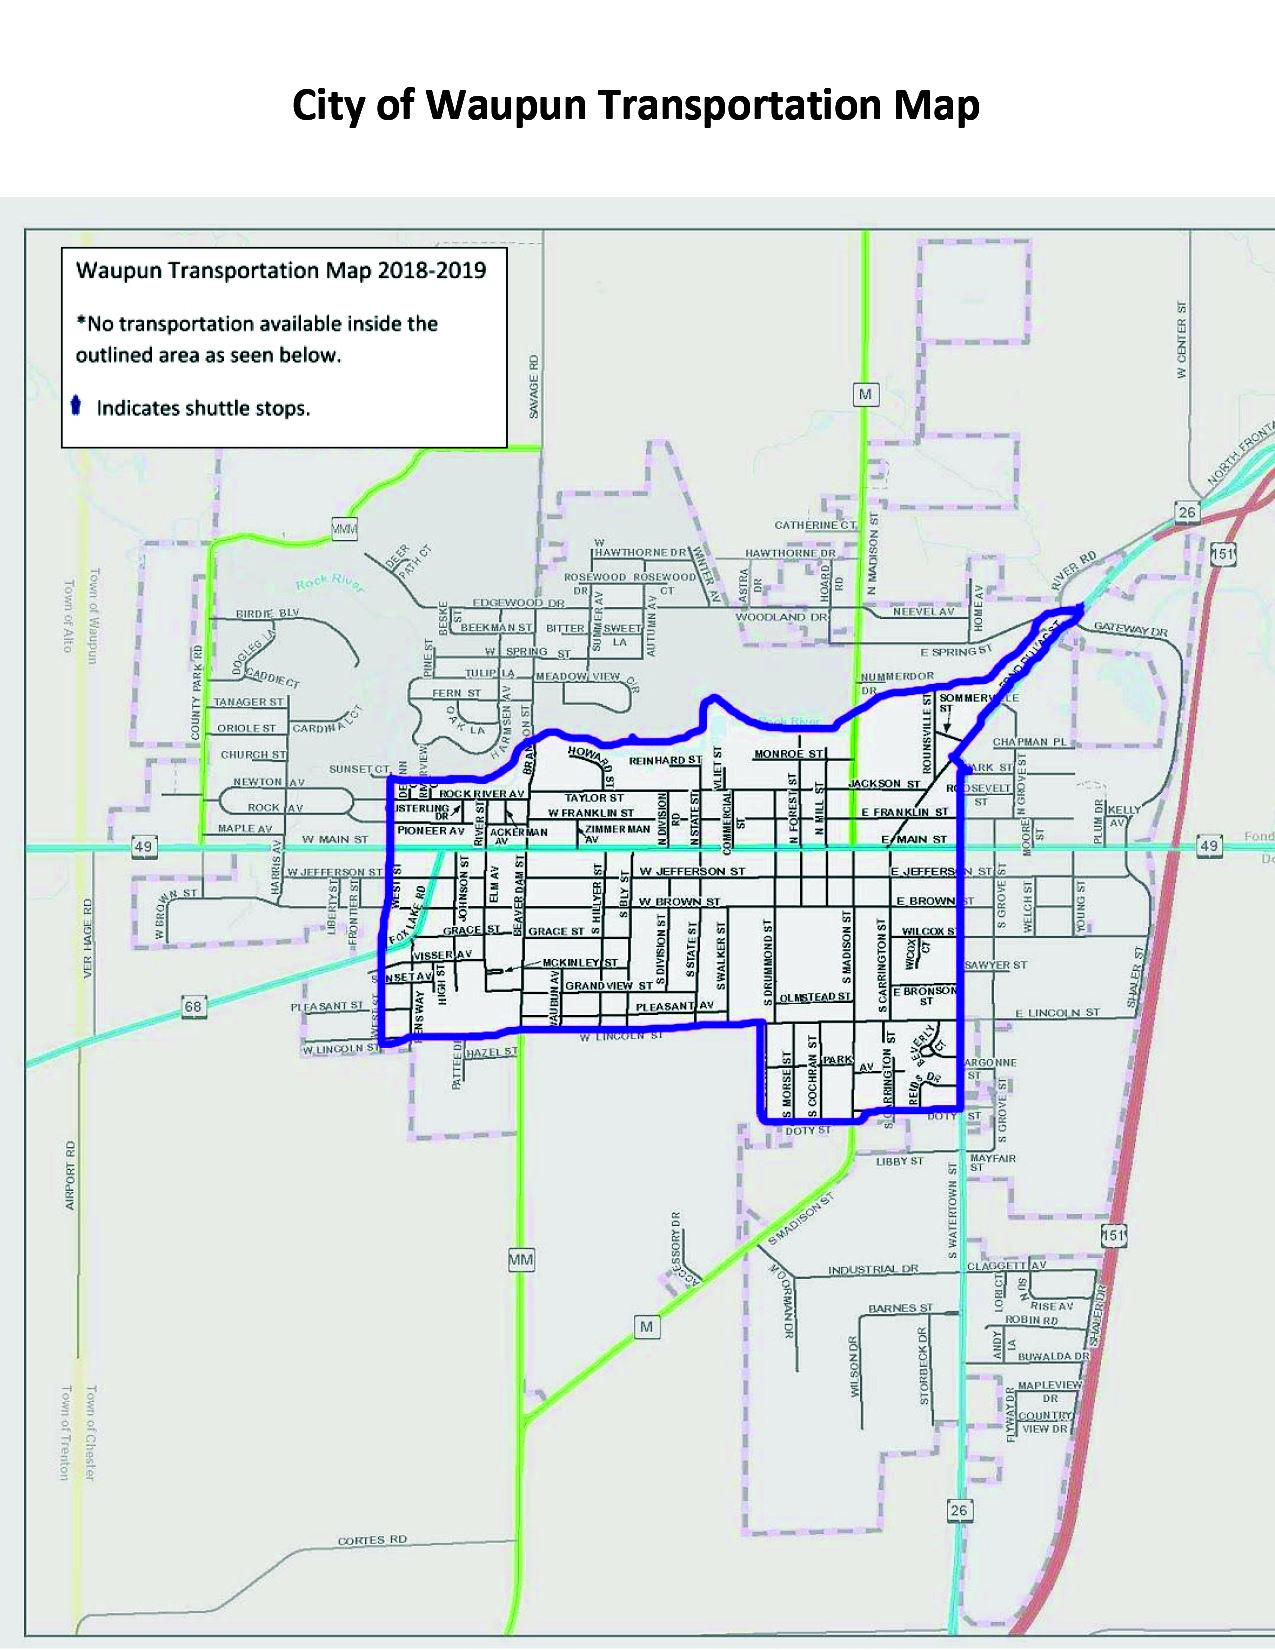 City of Waupun Transportation Map